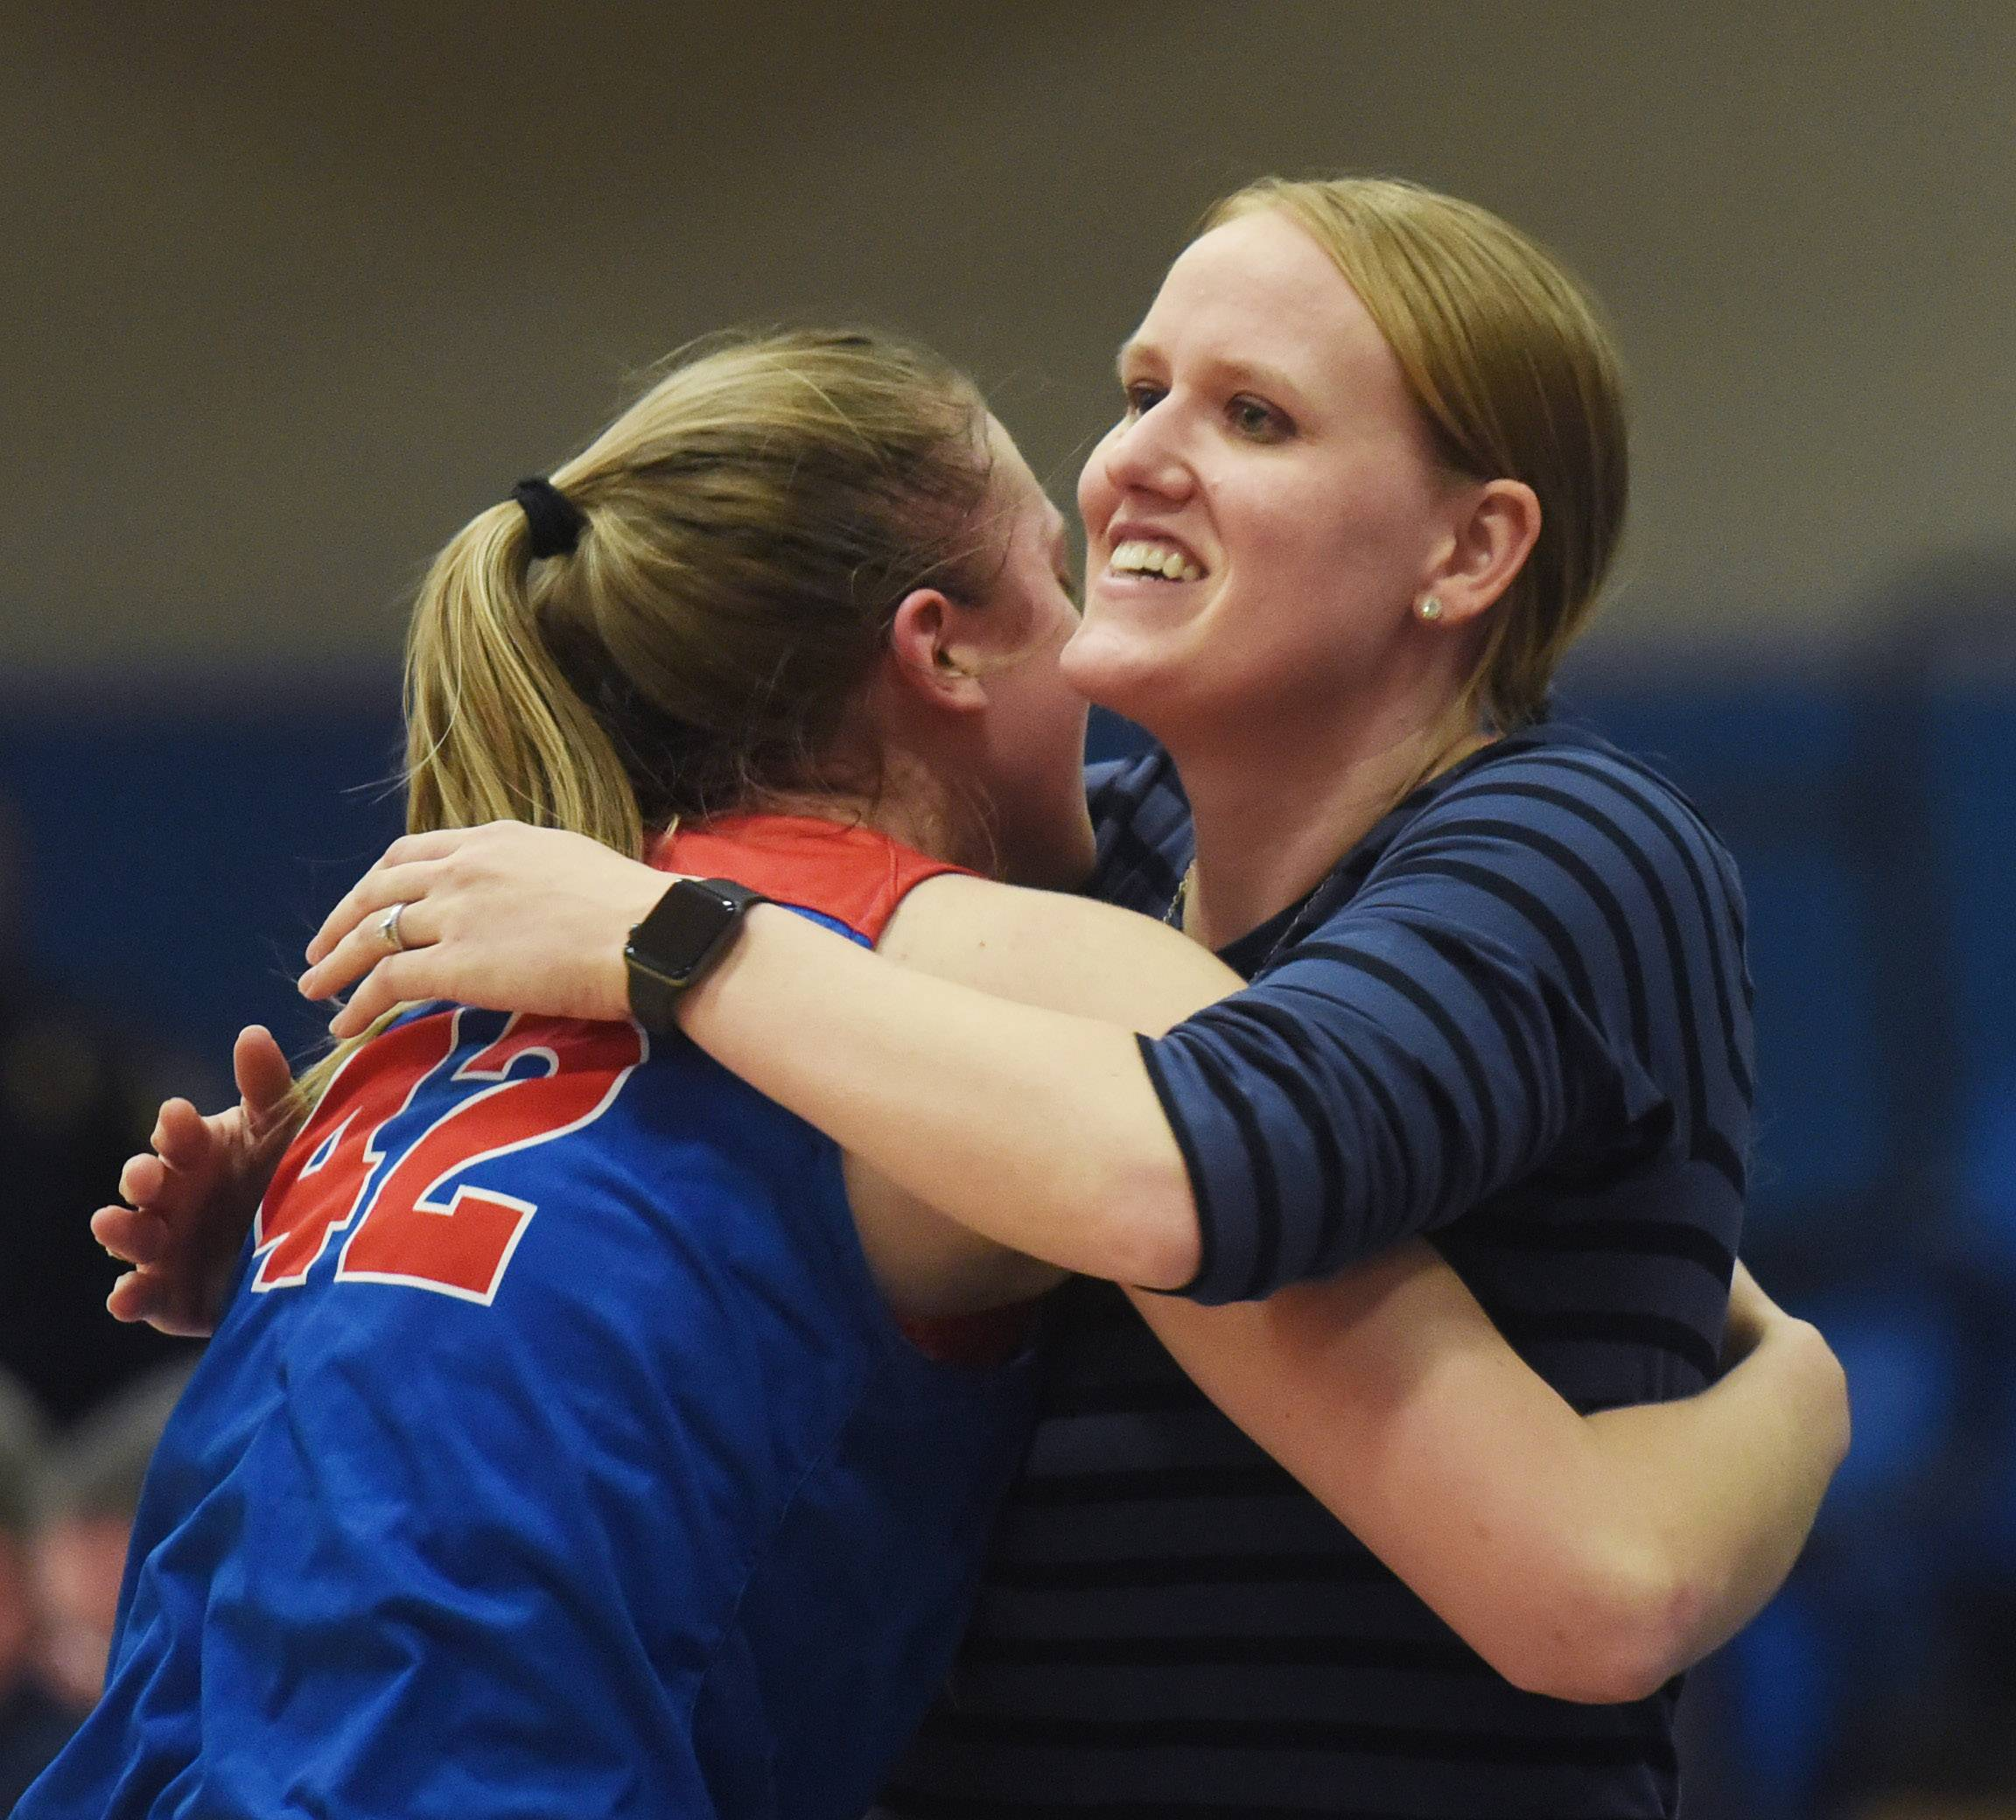 Glenbard South's Maggie Bair gets a hug from coach Morgan Eufrasio at the conclusion of the Raider's 34-24 victory over St. Viator during the Class 3A girls baskeball supersectional at Elgin Community College Monday.